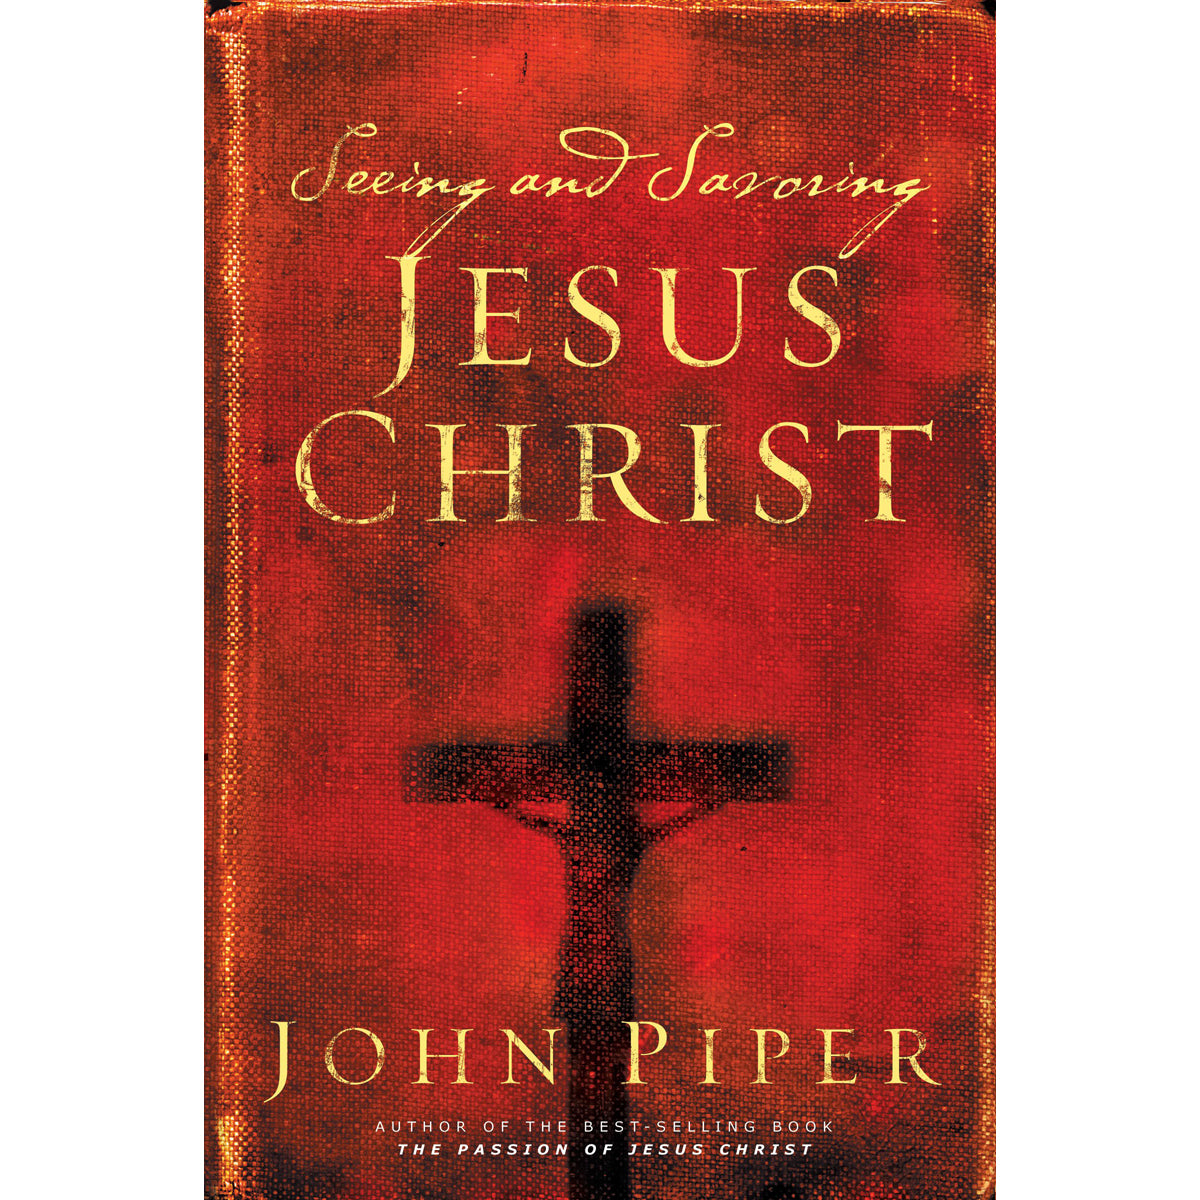 Seeing And Savoring Jesus Christ (Paperback)